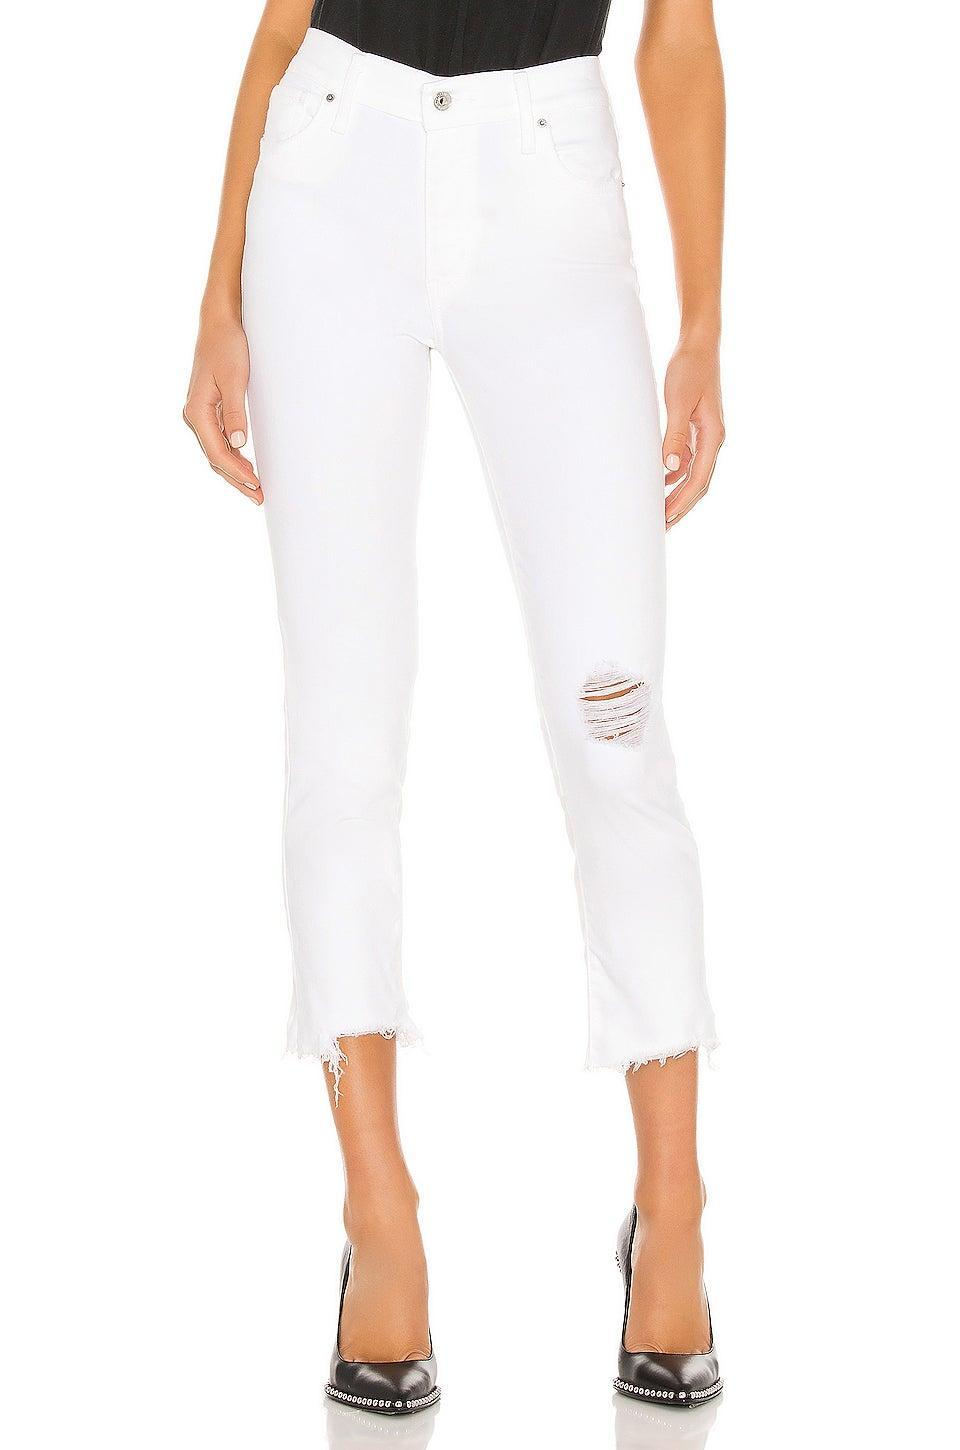 """<br> <br> <strong>Levi's</strong> LEVI'S 724 High Rise Straight Crop in Won Me Over, $, available at <a href=""""https://go.skimresources.com/?id=30283X879131&url=https%3A%2F%2Fwww.revolve.com%2Flevis-724-high-rise-straight-crop-in-won-me-over%2Fdp%2FLEIV-WJ156%2F"""" rel=""""nofollow noopener"""" target=""""_blank"""" data-ylk=""""slk:Revolve"""" class=""""link rapid-noclick-resp"""">Revolve</a>"""